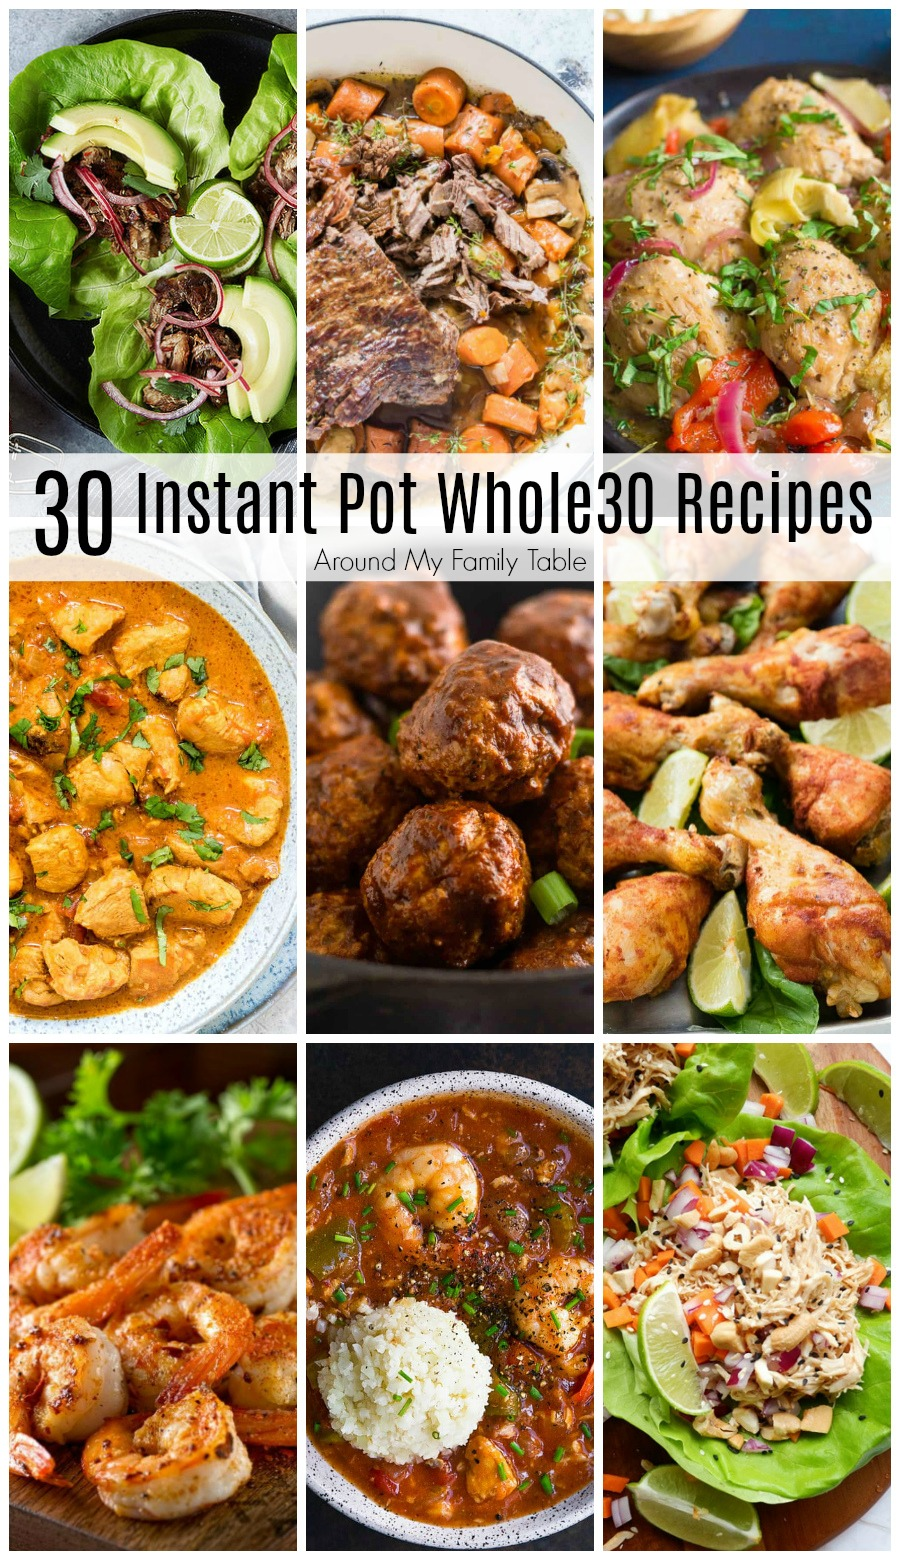 Planning for your Whole30 month doesn't have to be overwhelming.  I've collected a month's worth of delicious Whole30 Instant Pot Recipes to get you through the month. #whole30 #instantpot via @slingmama